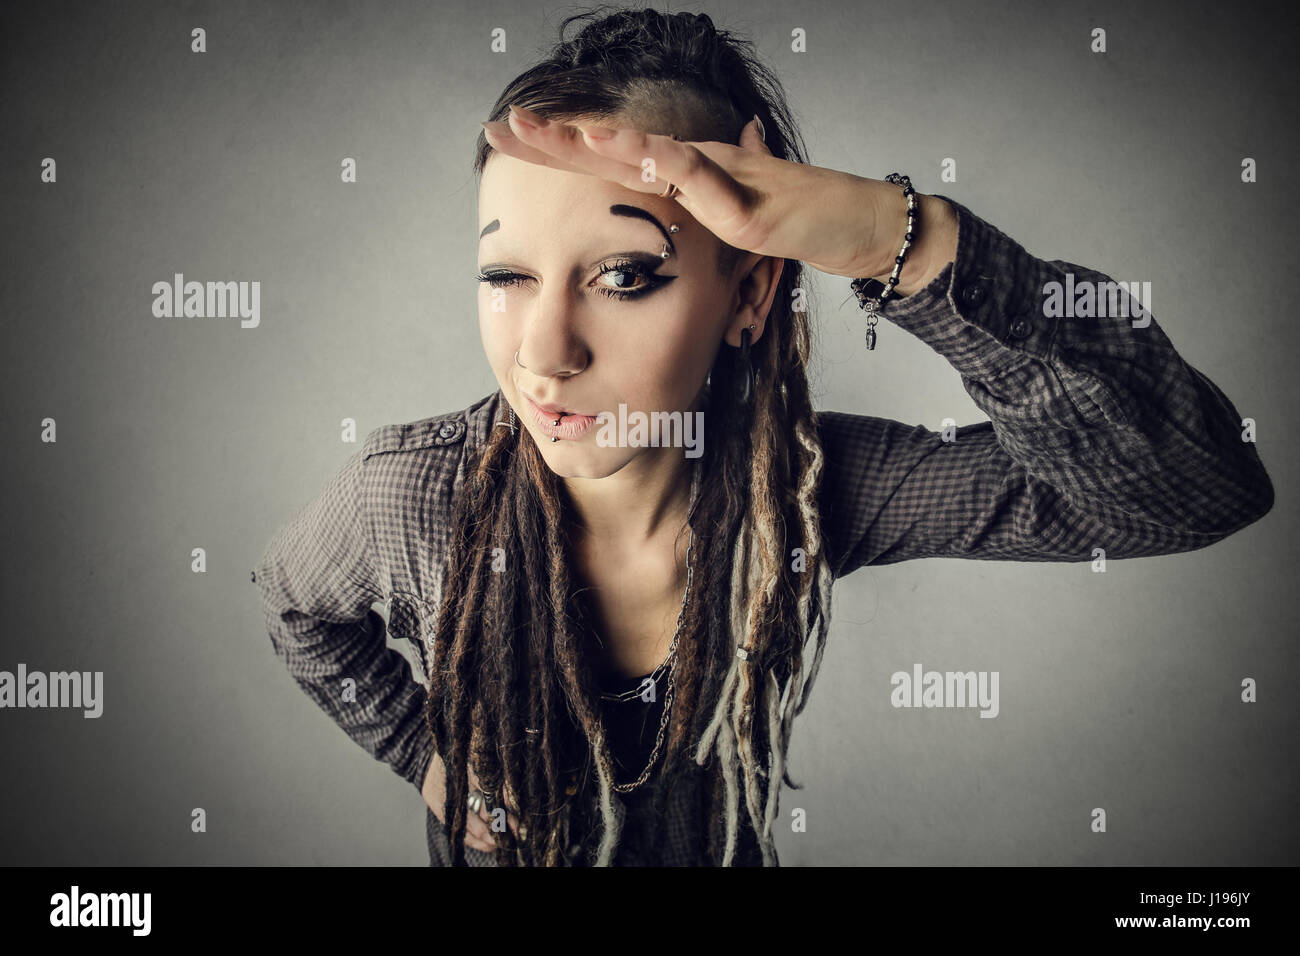 Alternative woman looking at the distance - Stock Image